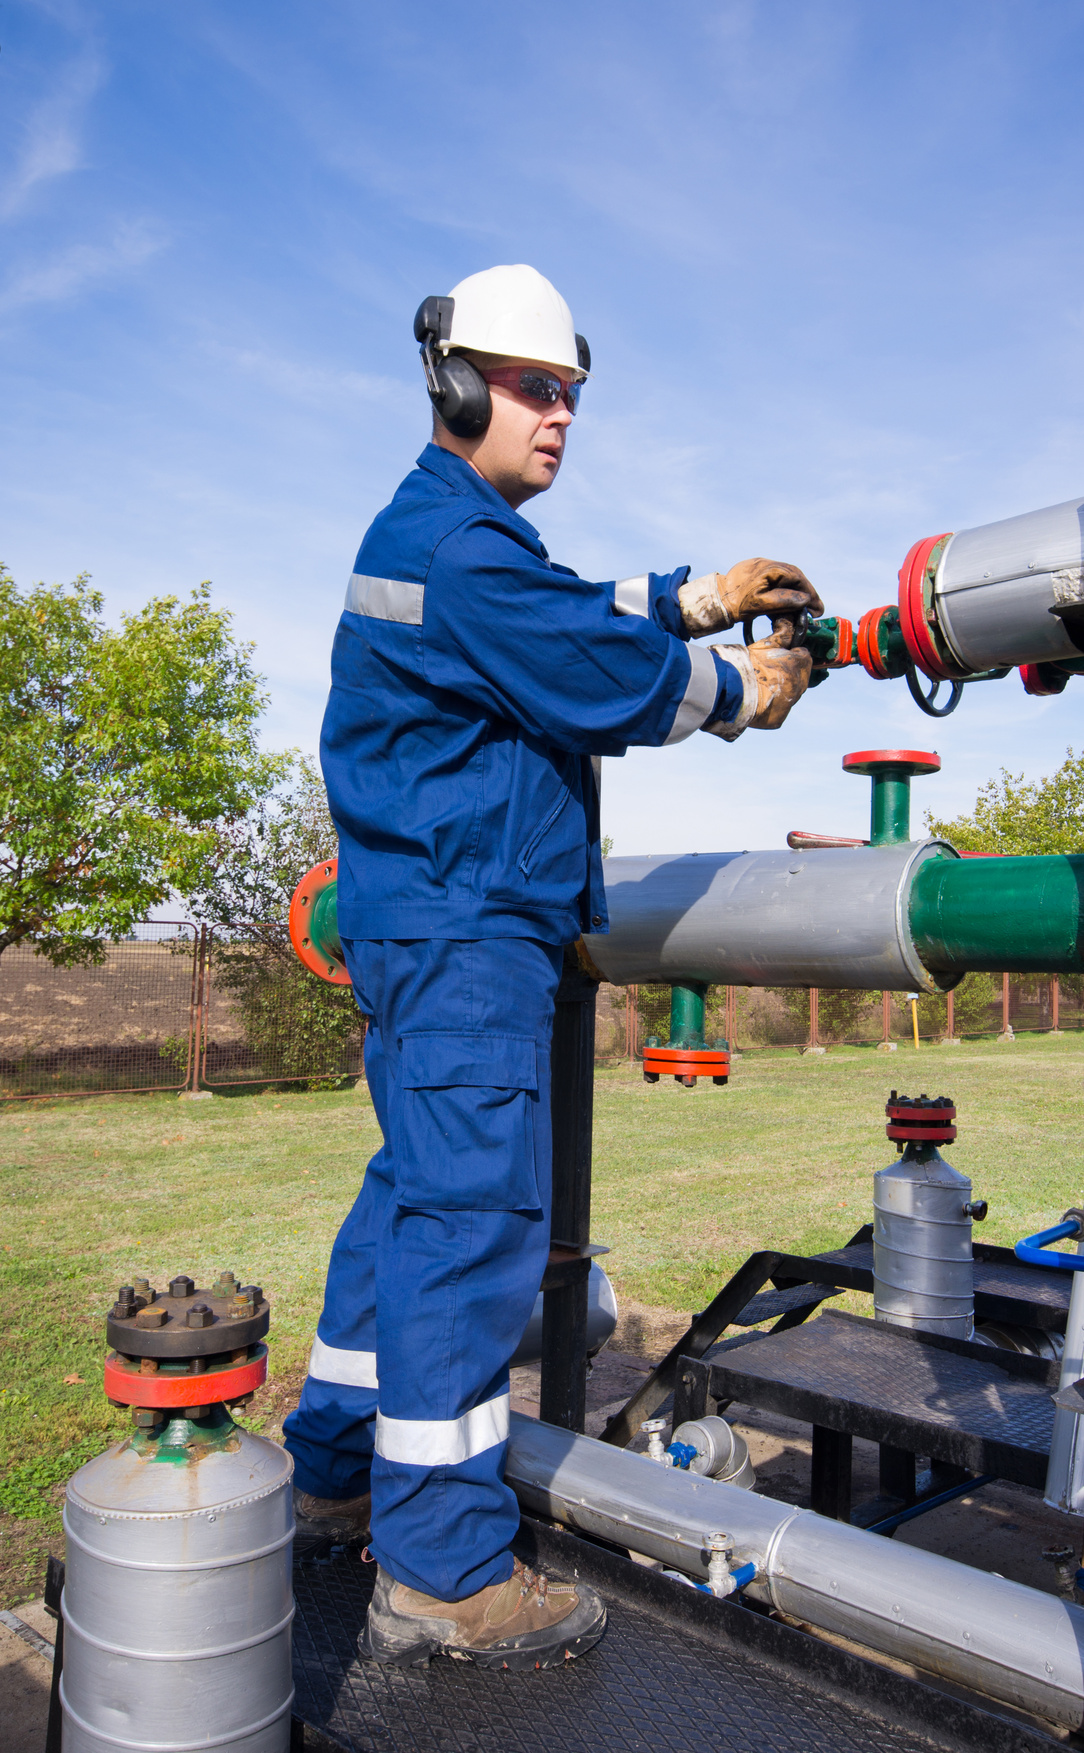 Atmos employees work with a variety of equipment to ensure that they can be ready for almost anything in the field